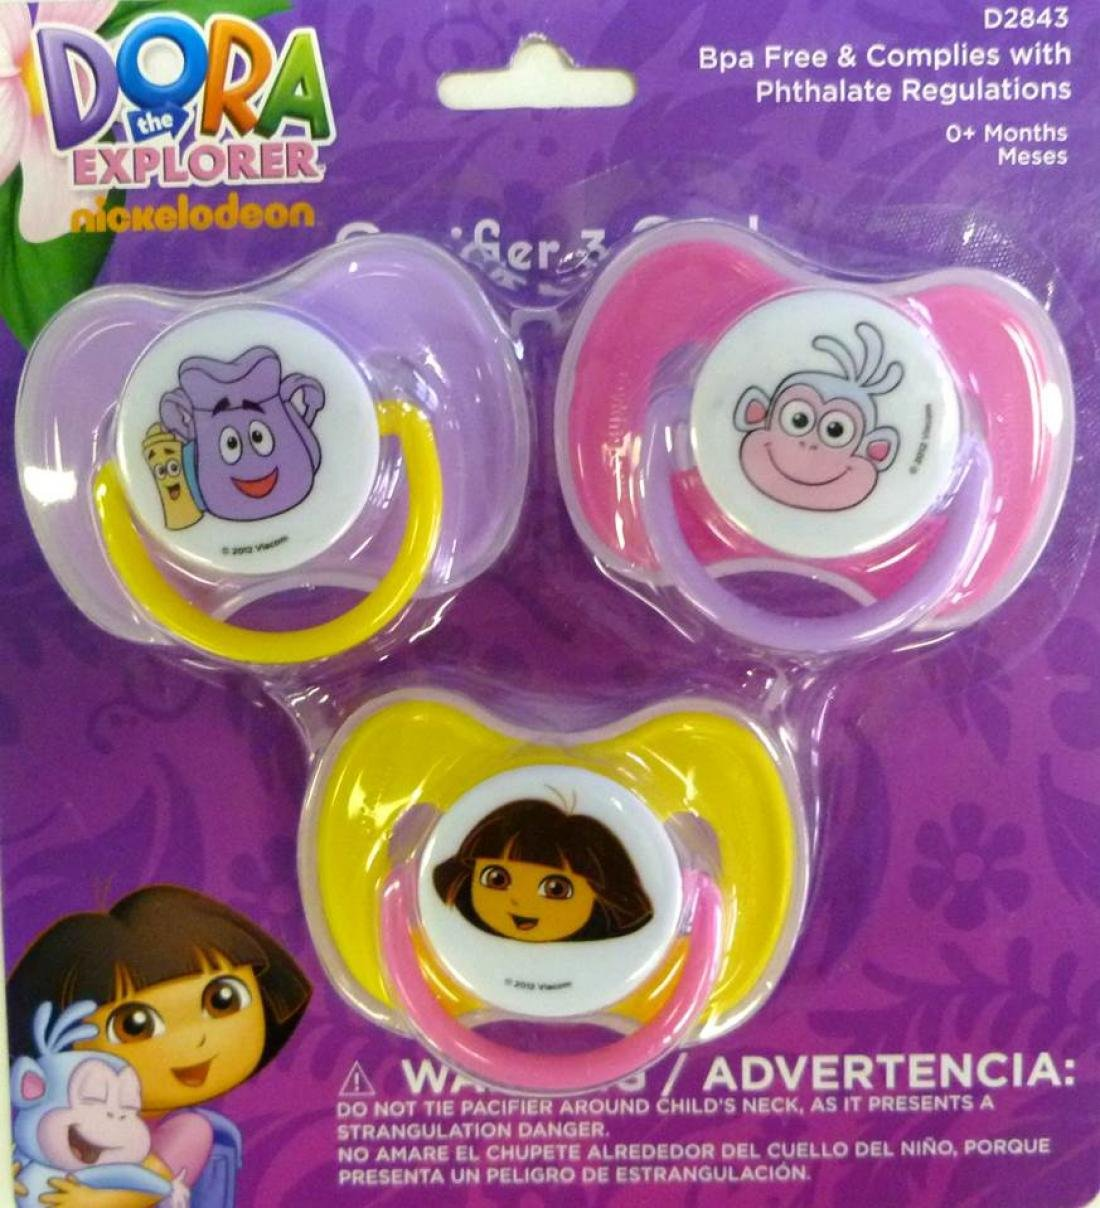 Amazon.com : Dora the Explorer 3-pack Baby Pacifiers : Baby